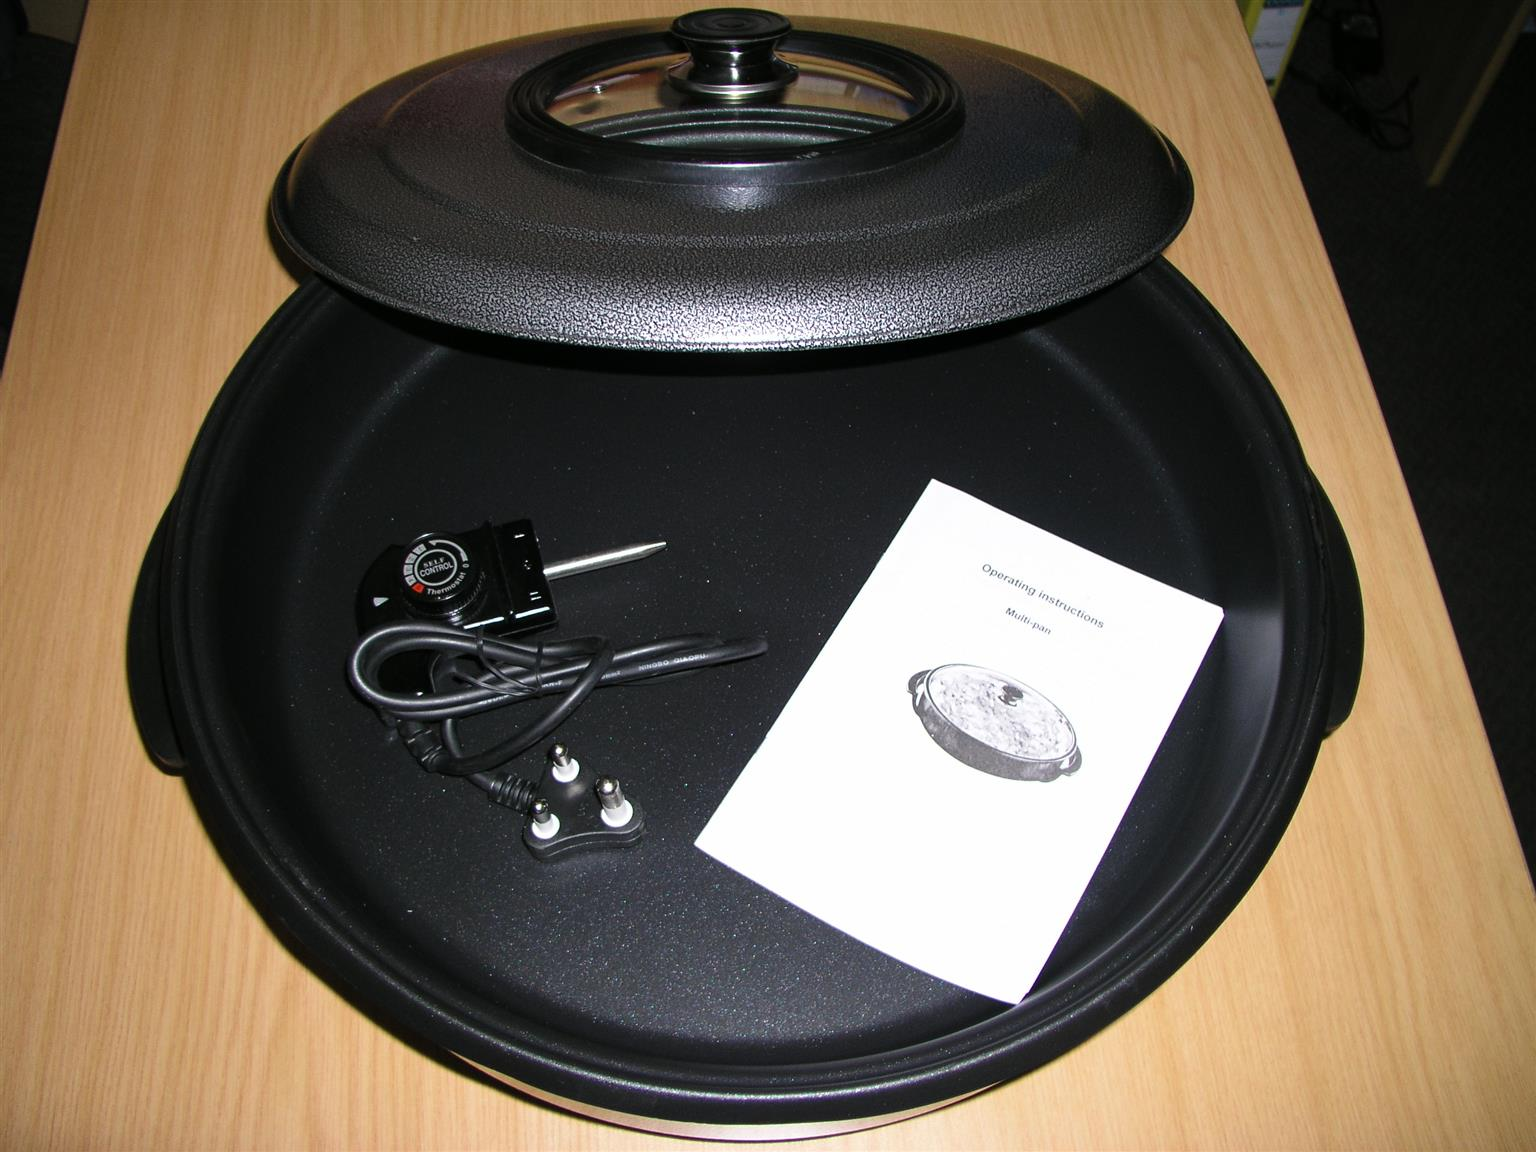 150 = large 48cm Multi-Purpose Electrical Frying Pans for Sale